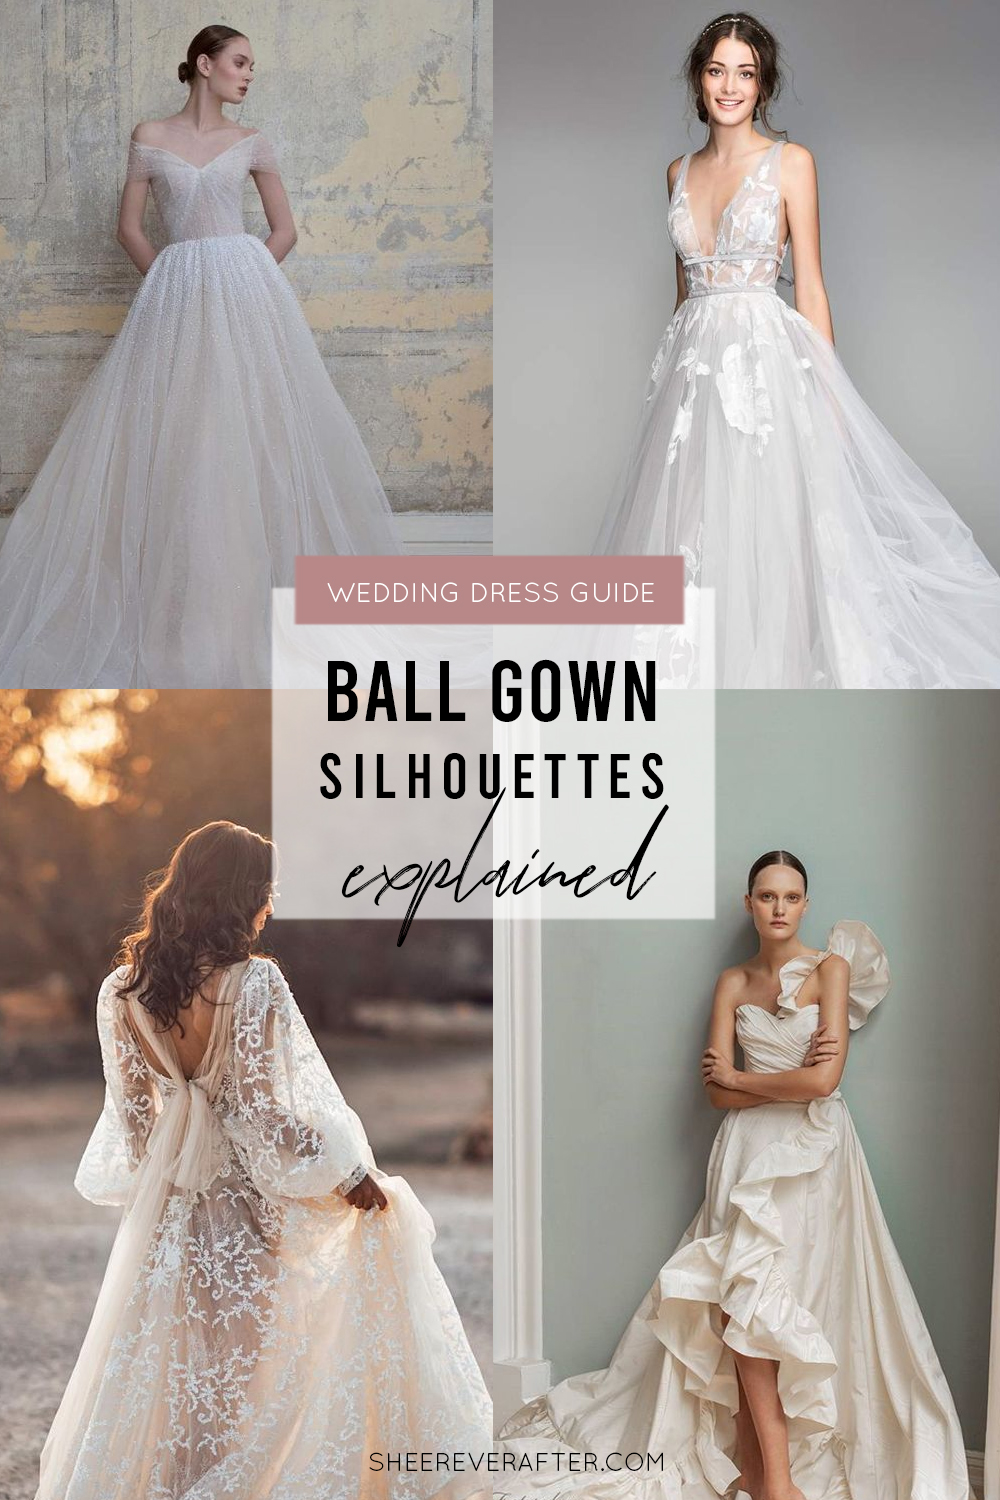 #weddingdress #weddingdresssilhouettes #bridalgown #bridal #weddingday #weddingideas #beautifuldress #ballgown